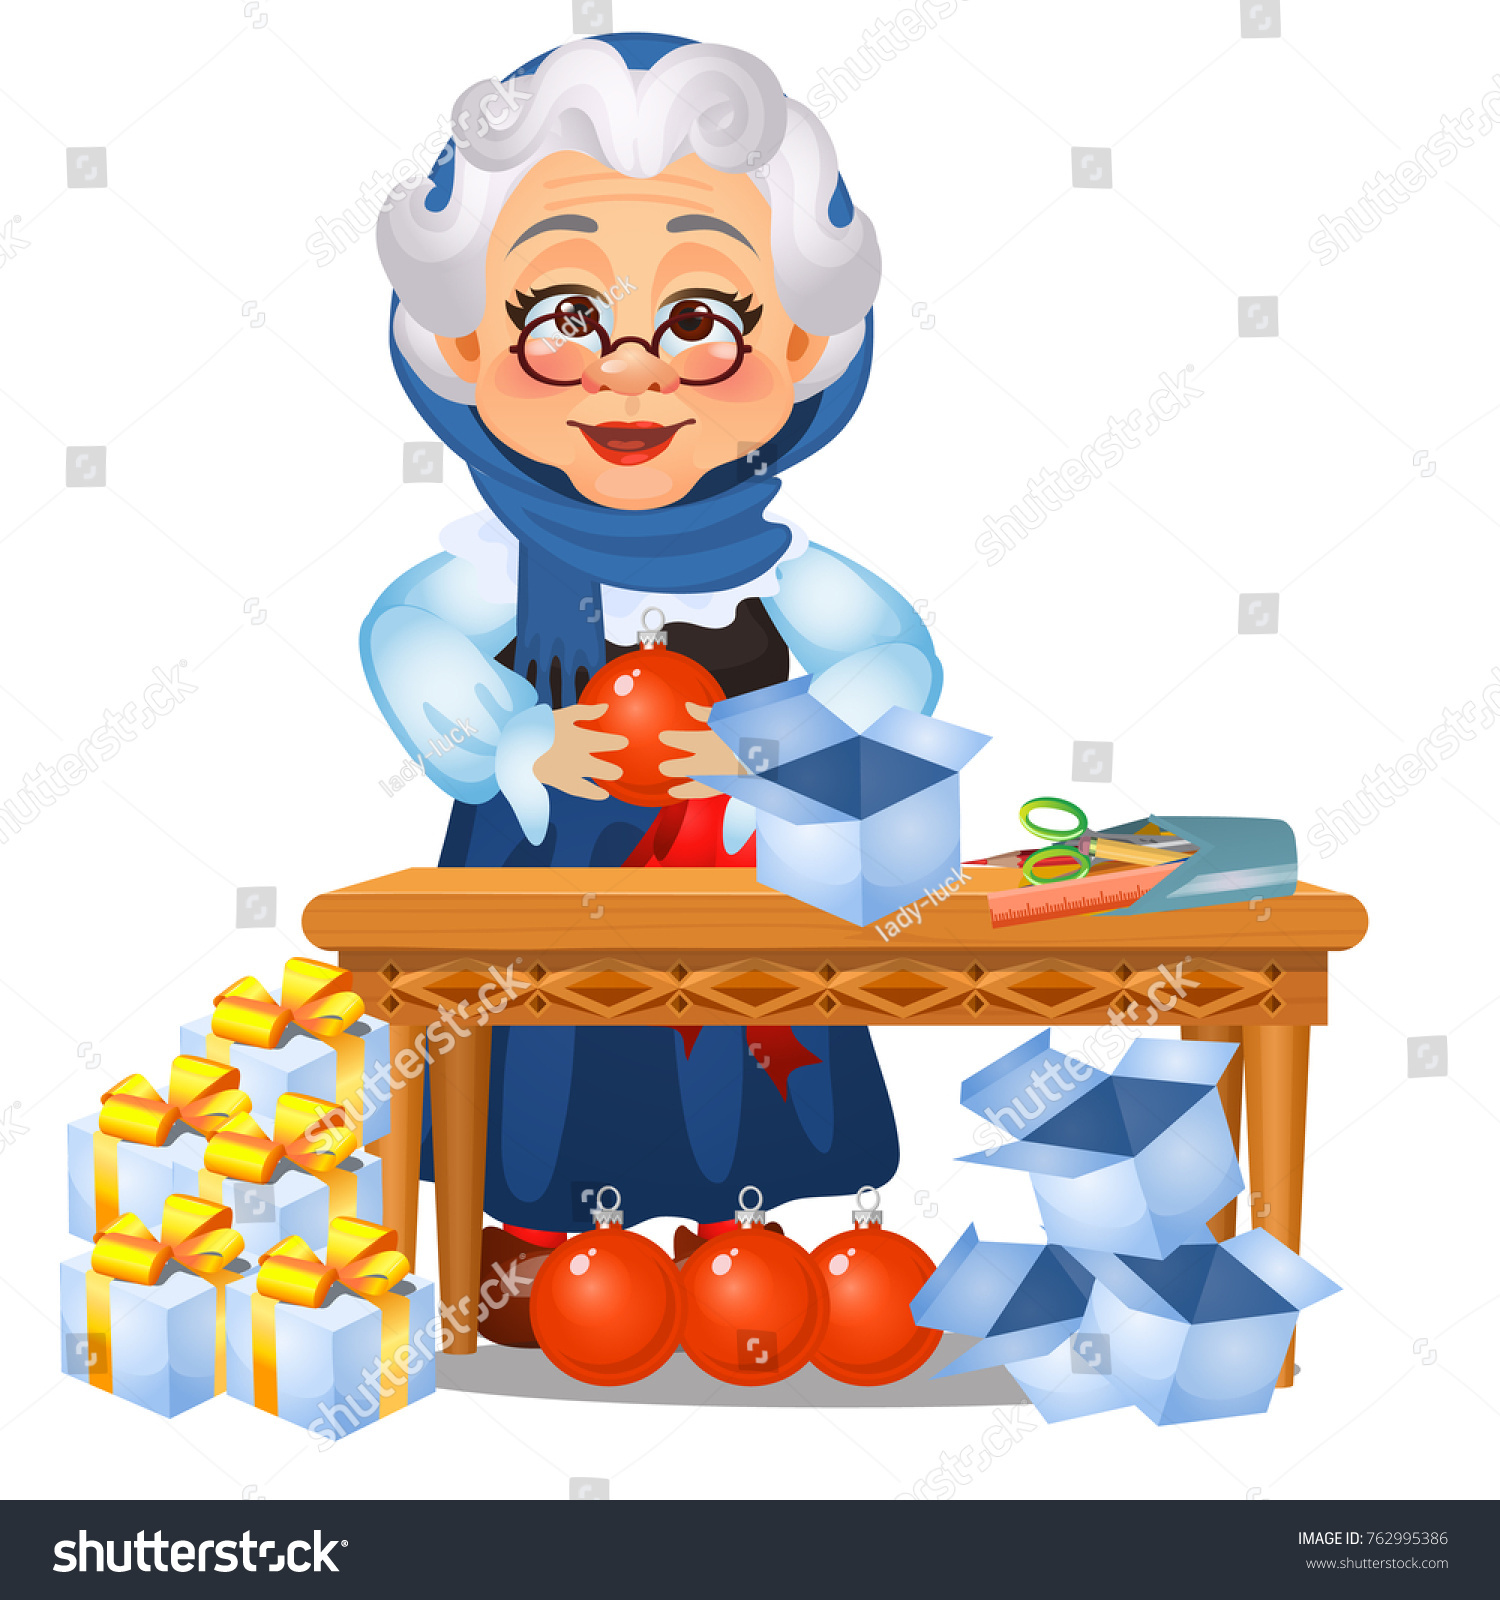 Funny Animated Old Lady Touches On Stock Vector (Royalty Free ...